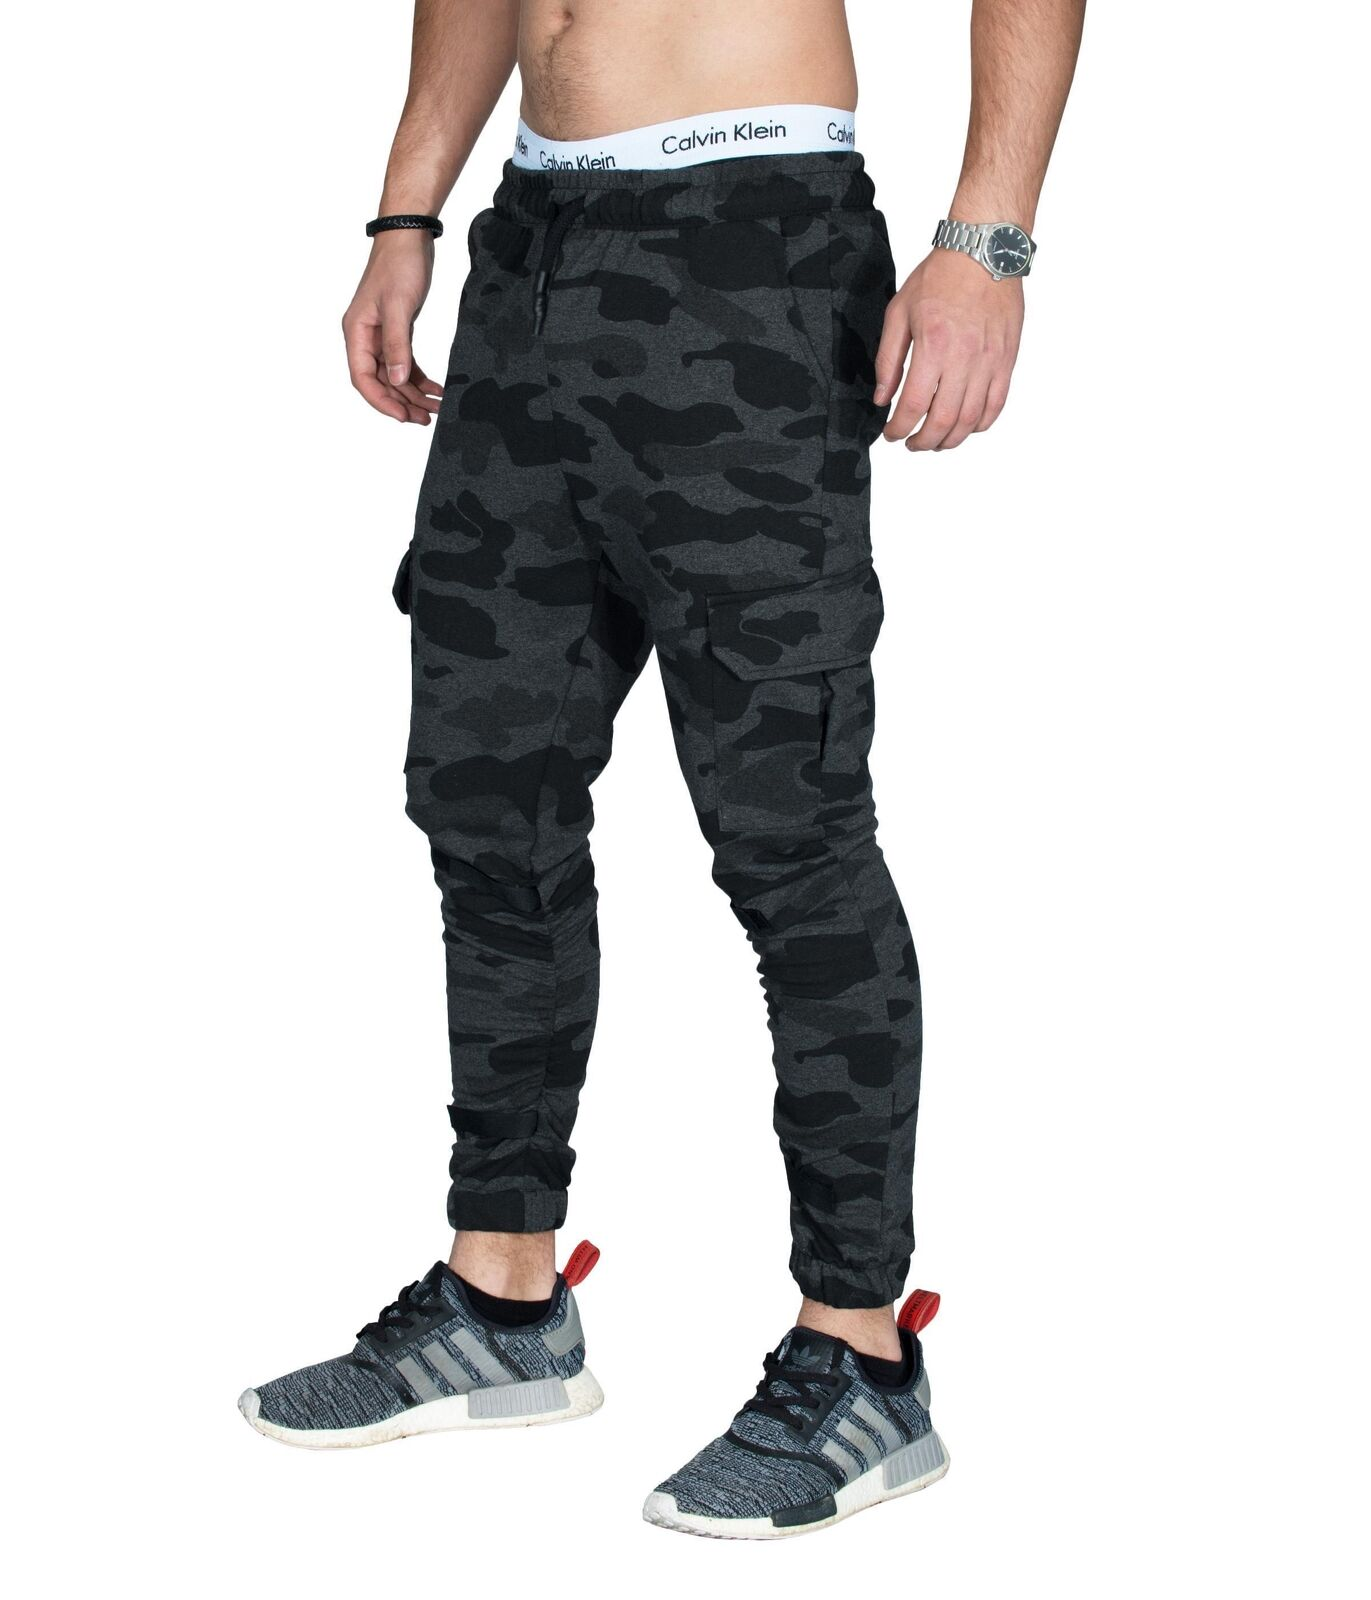 BetterStylz MartyBZ Cargo Jogginghose Slim Fit Sweatpants Jogger Fitness S-XL